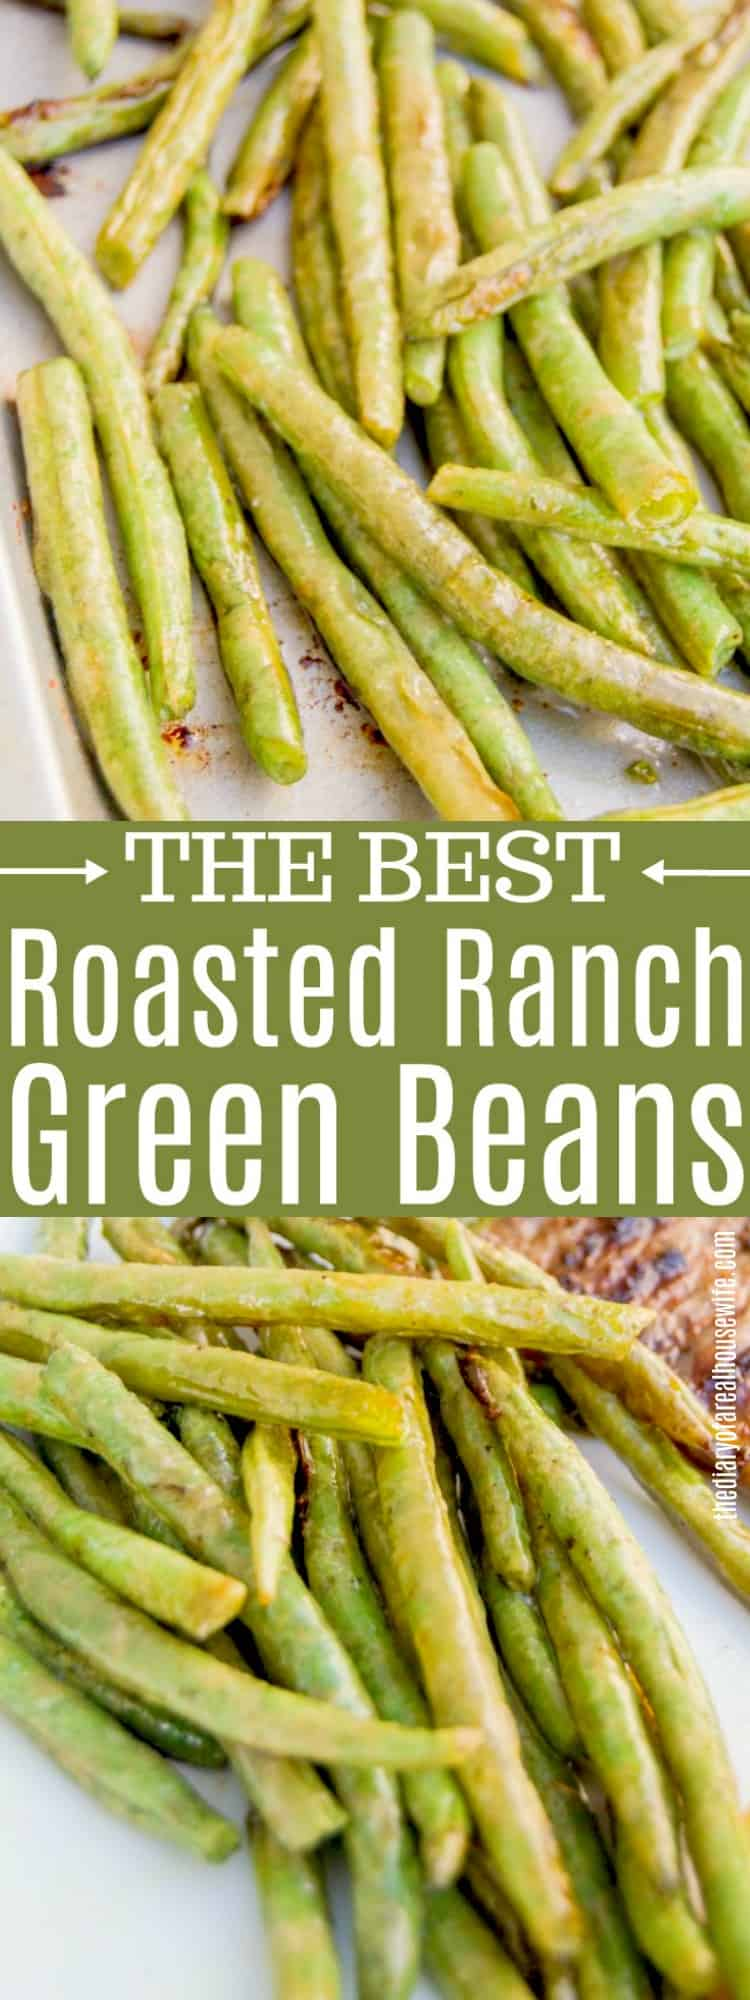 Roasted Ranch Green Beans